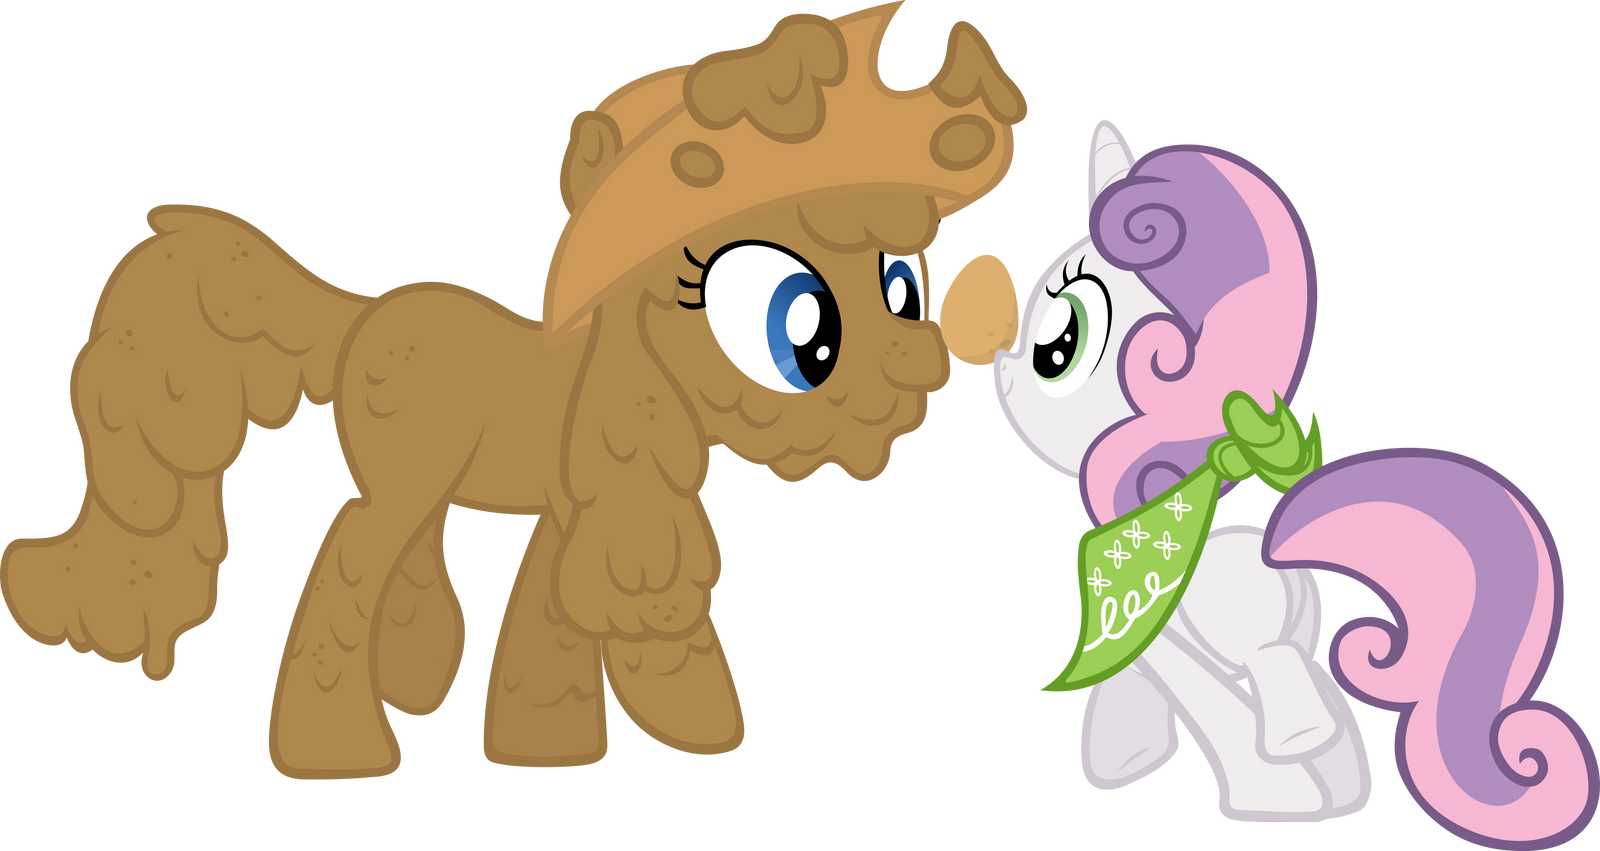 What Are Sisters For? by krazy3